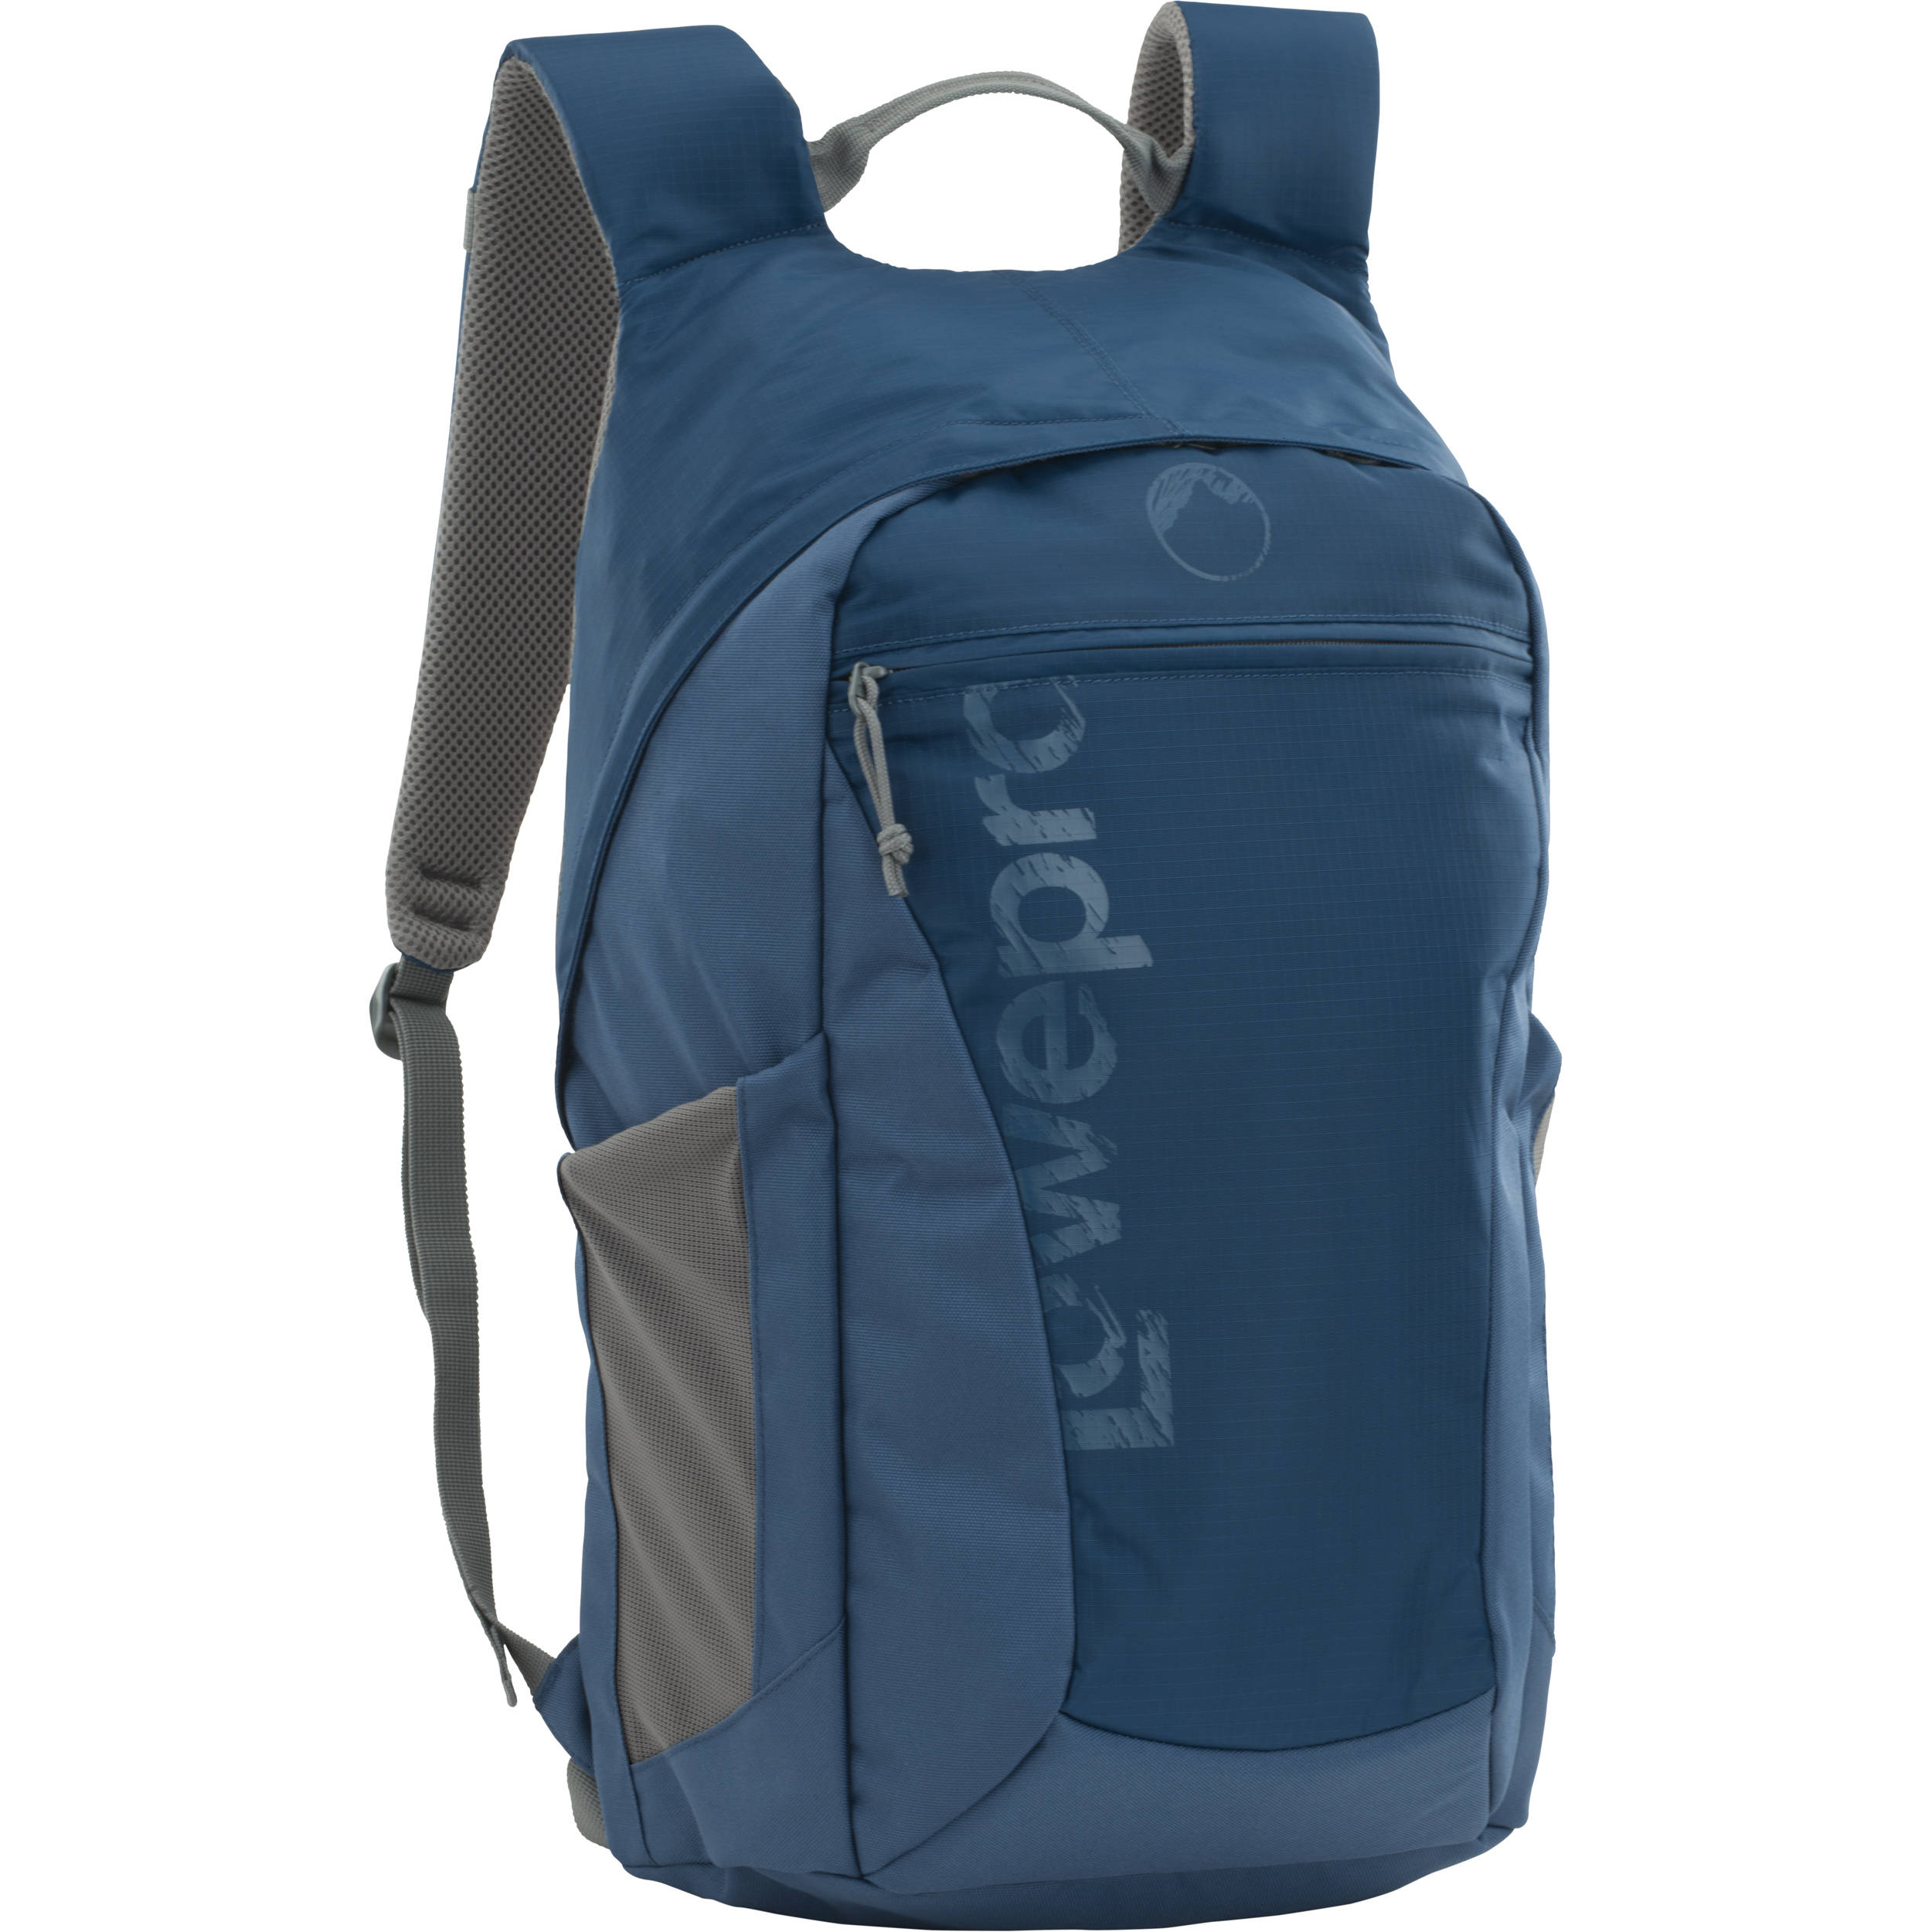 a5bca08045b Lowepro Photo Hatchback 22L AW Backpack (Galaxy Blue) LP36435